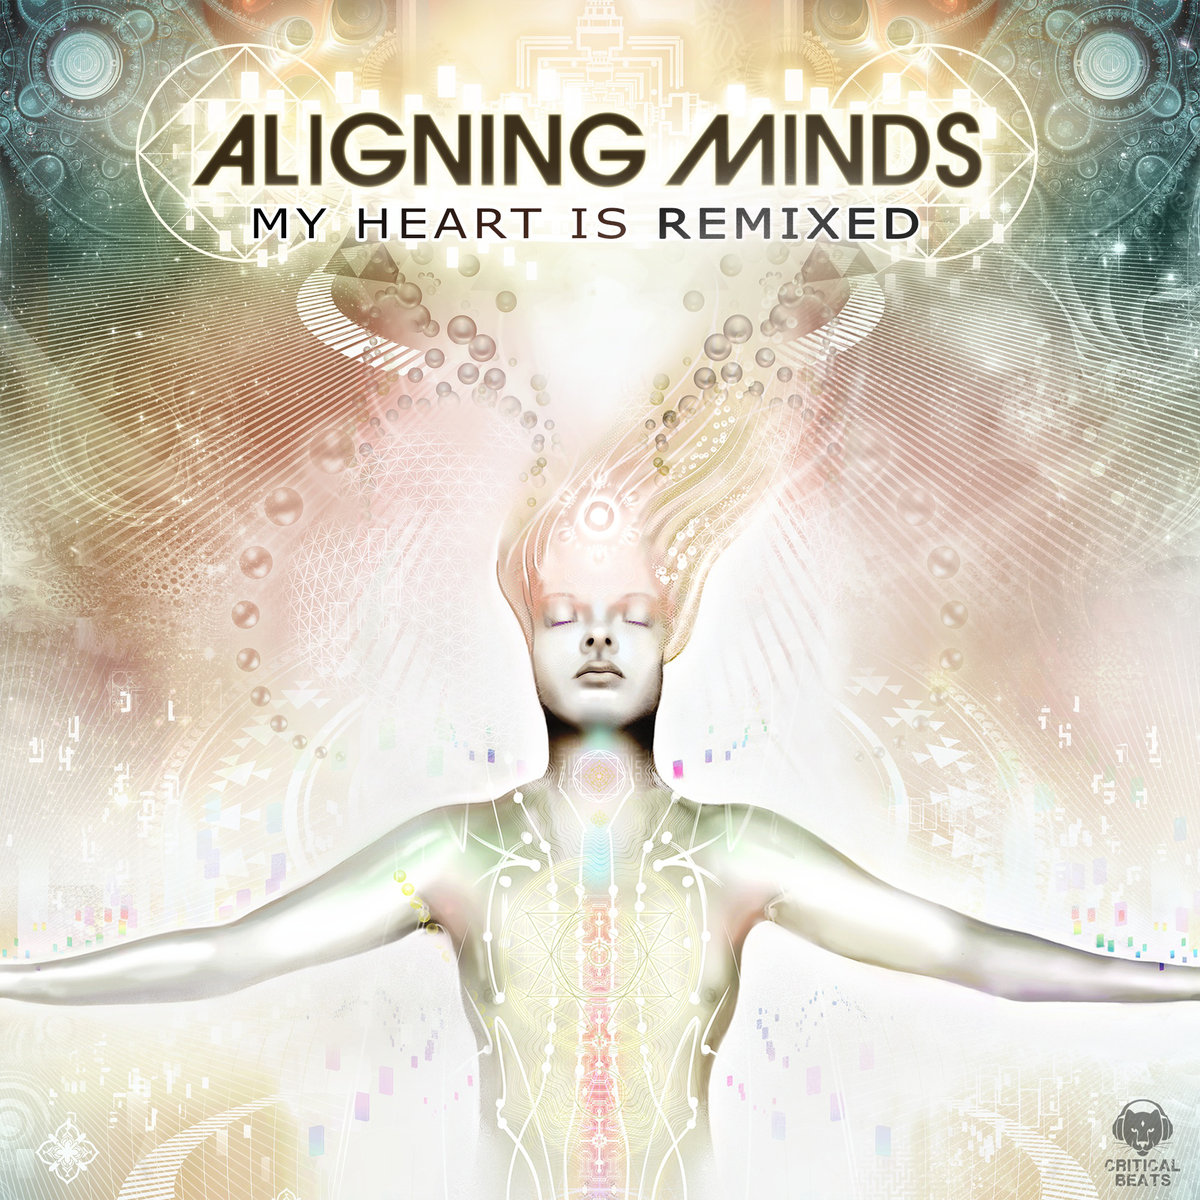 Aligning Minds - Weeping Willow (ilmli Remix) @ 'My Heart Is Remixed' album (asheville, baltimore)